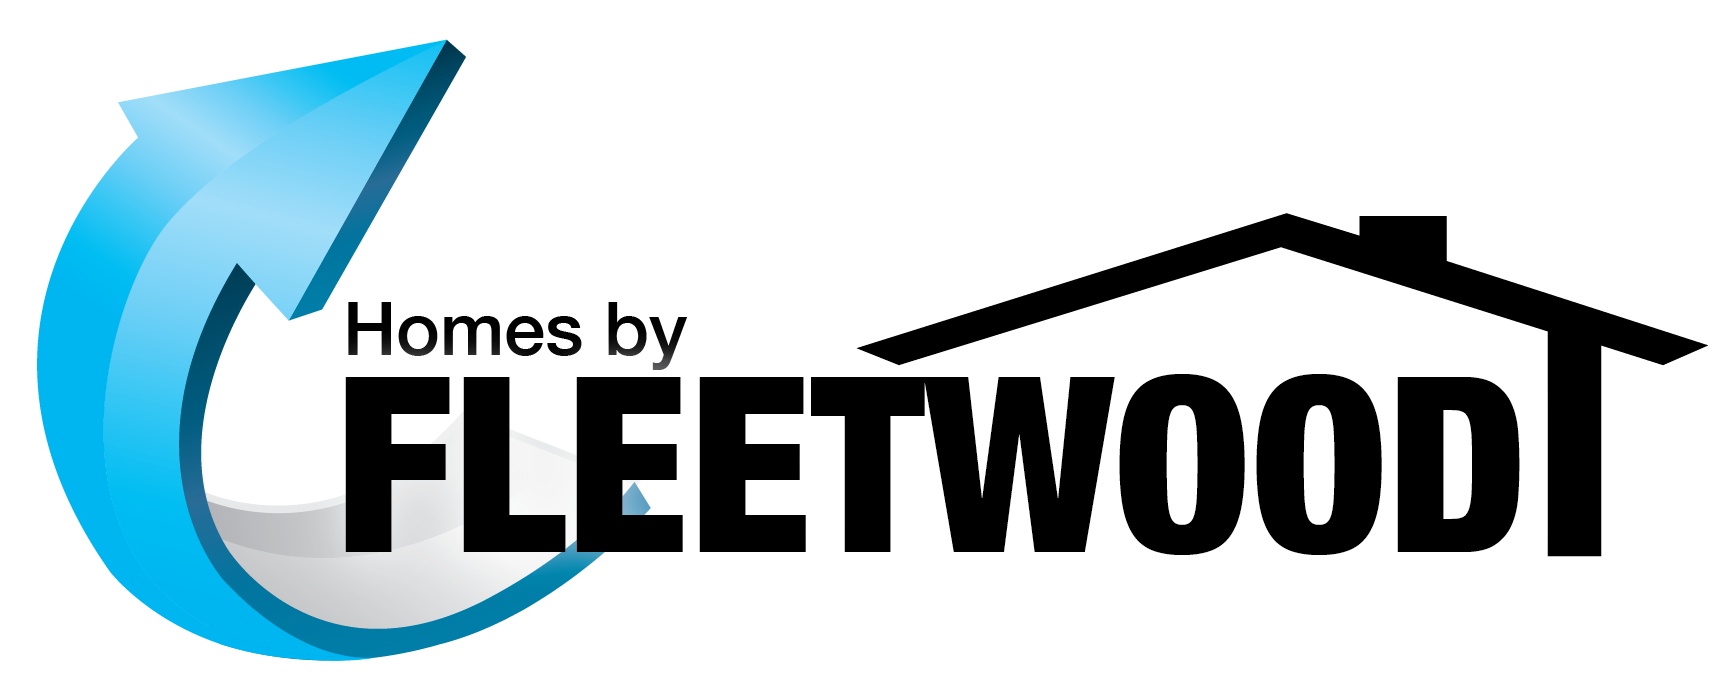 Homes by Fleetwood logo